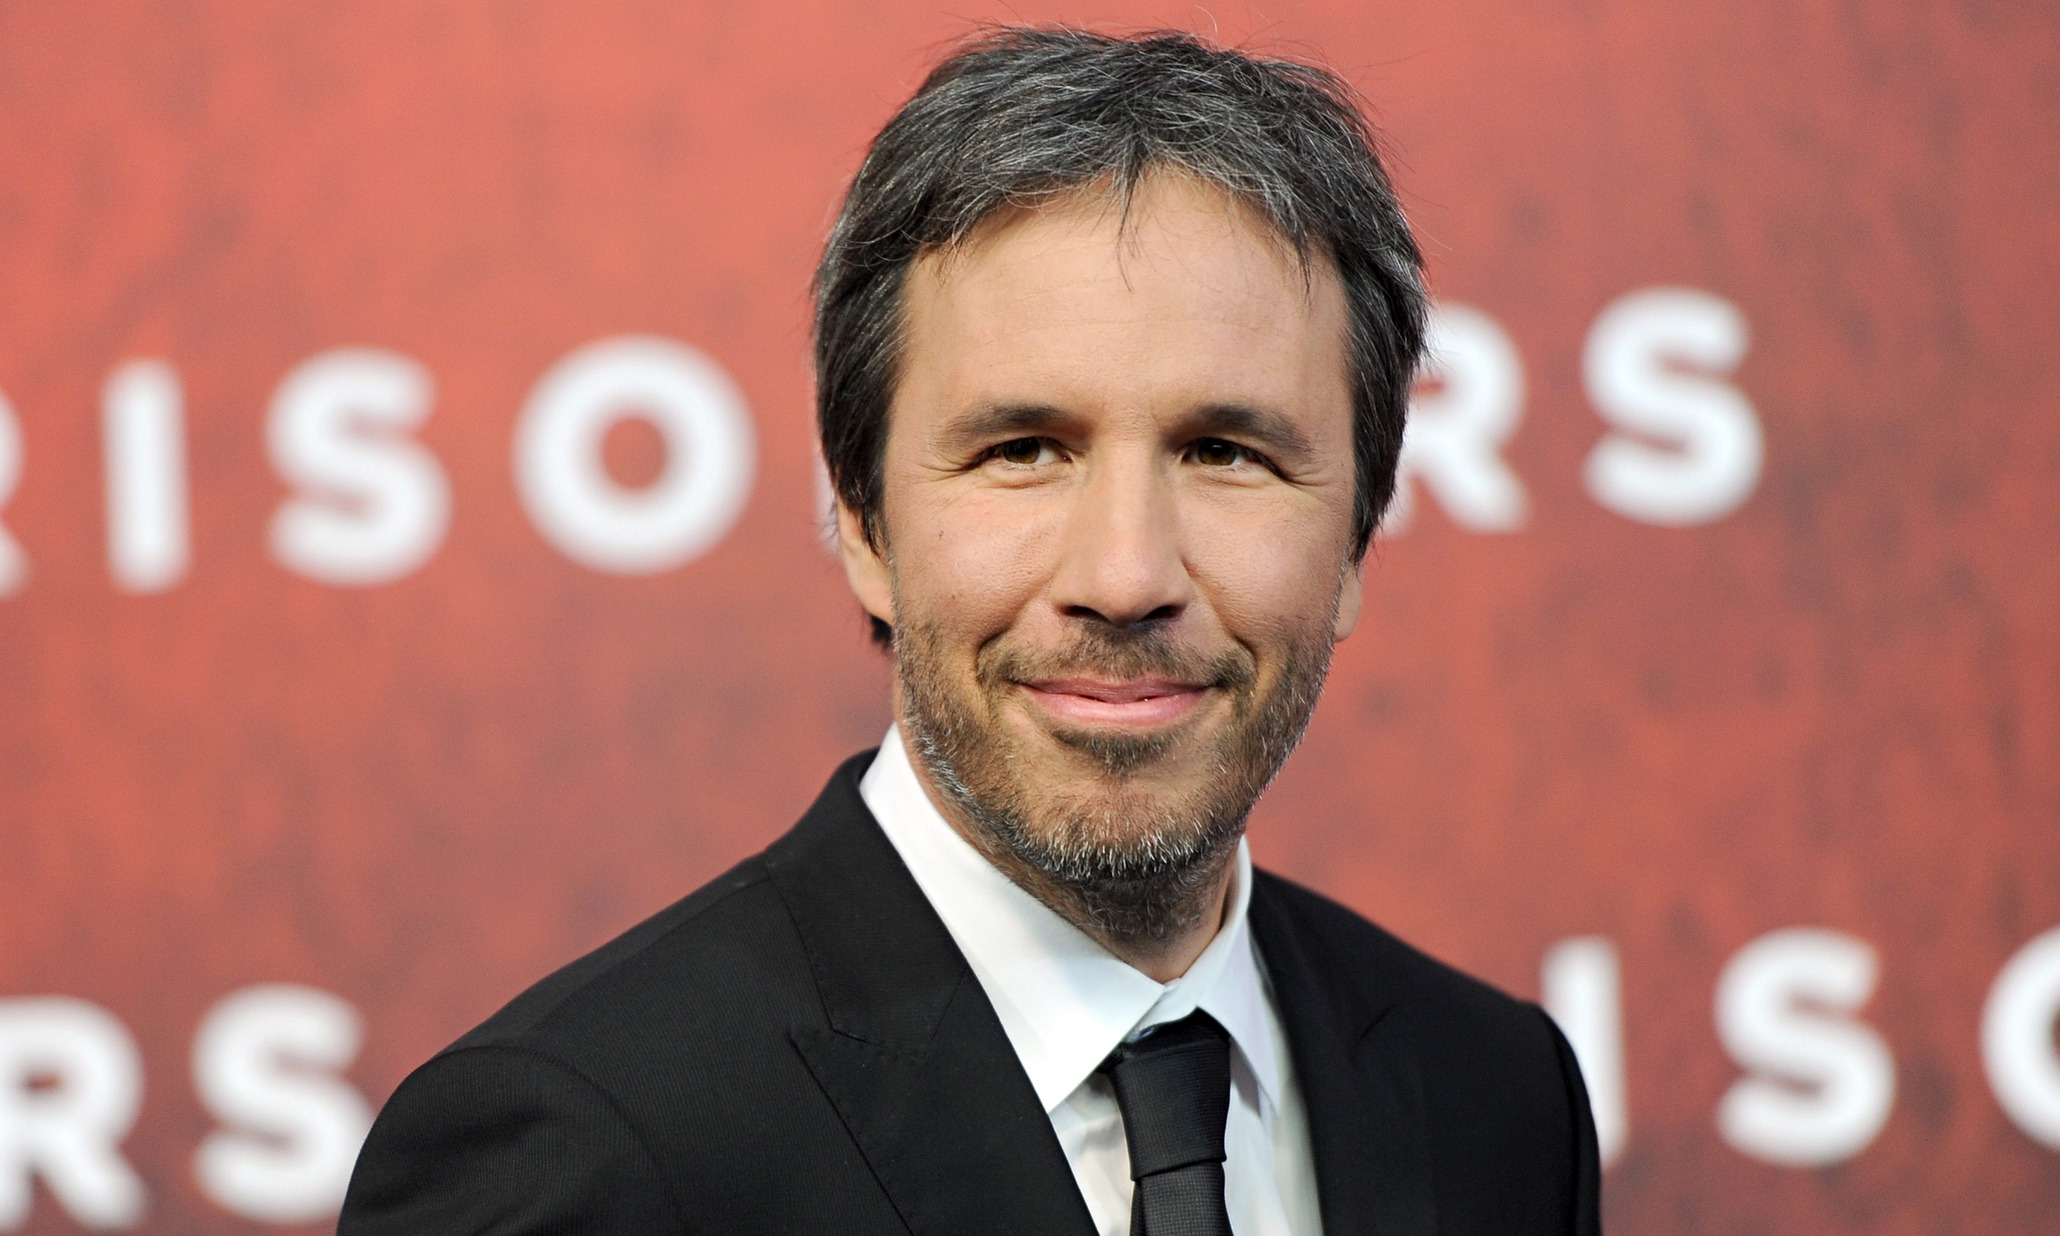 Denis Villeneuve earned a  million dollar salary - leaving the net worth at 7 million in 2018